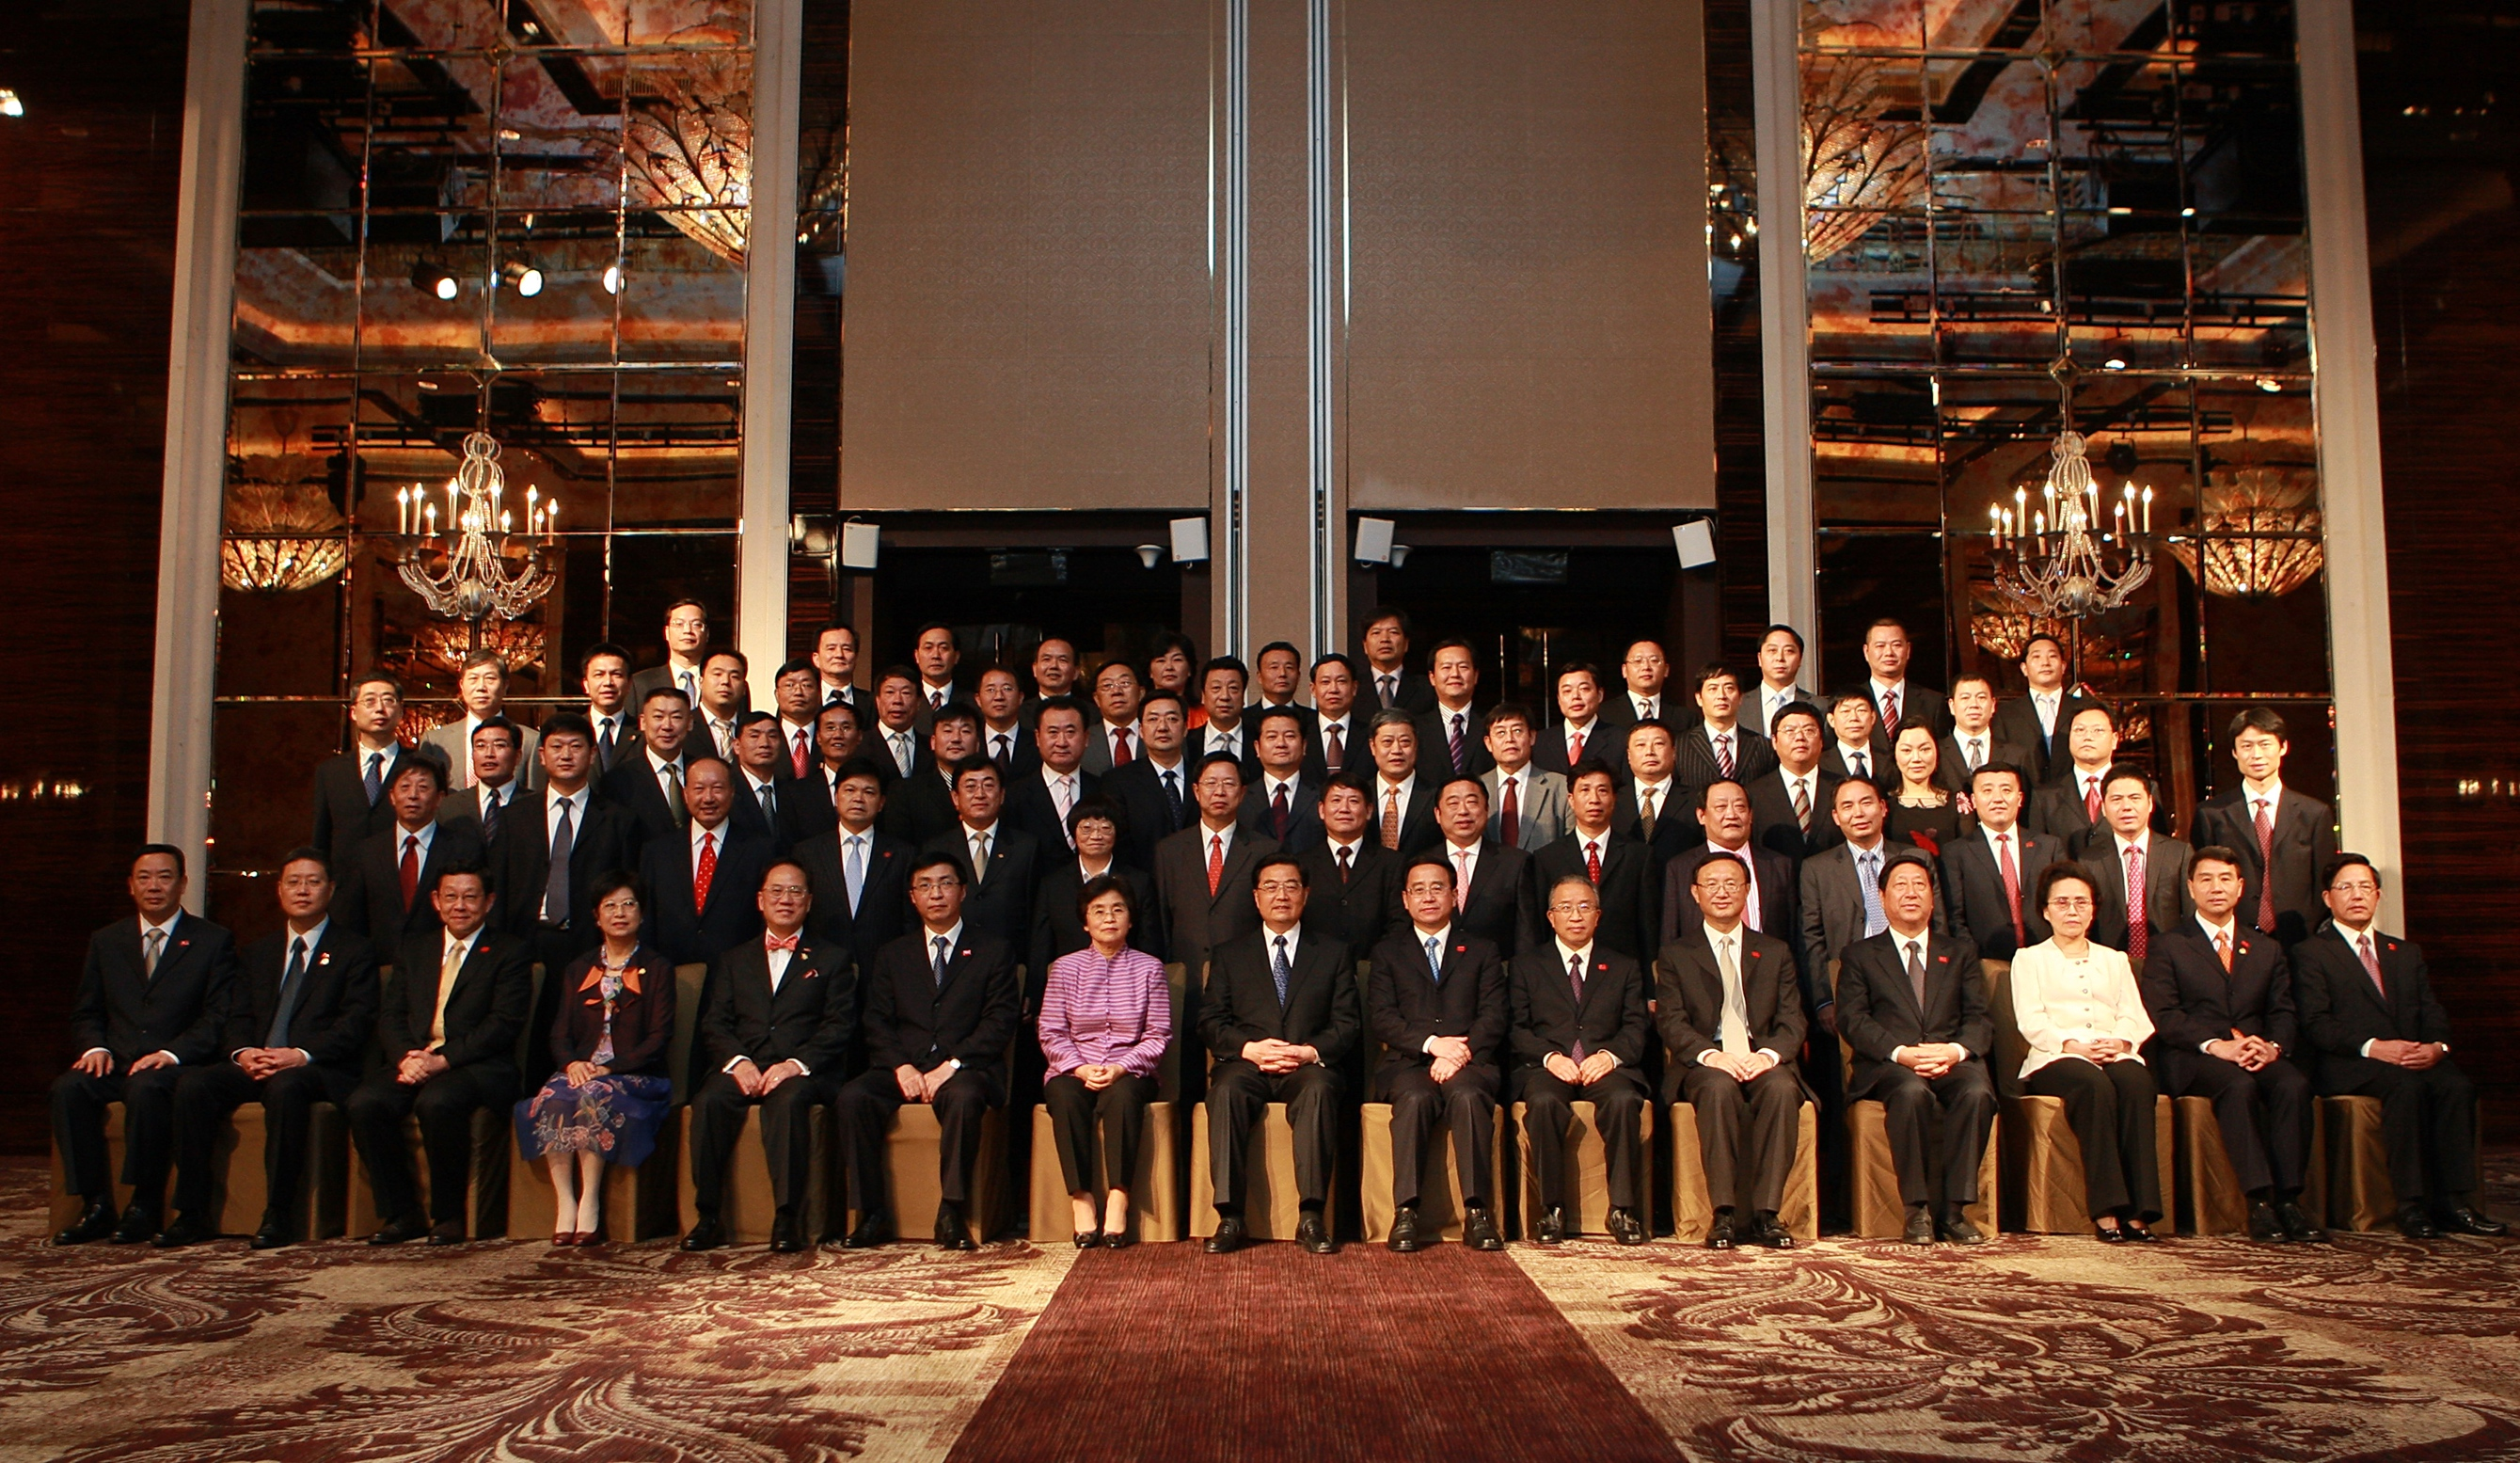 A photo from the 2009 APEC summit with both President Hu Jintao and Group President Bin Chen